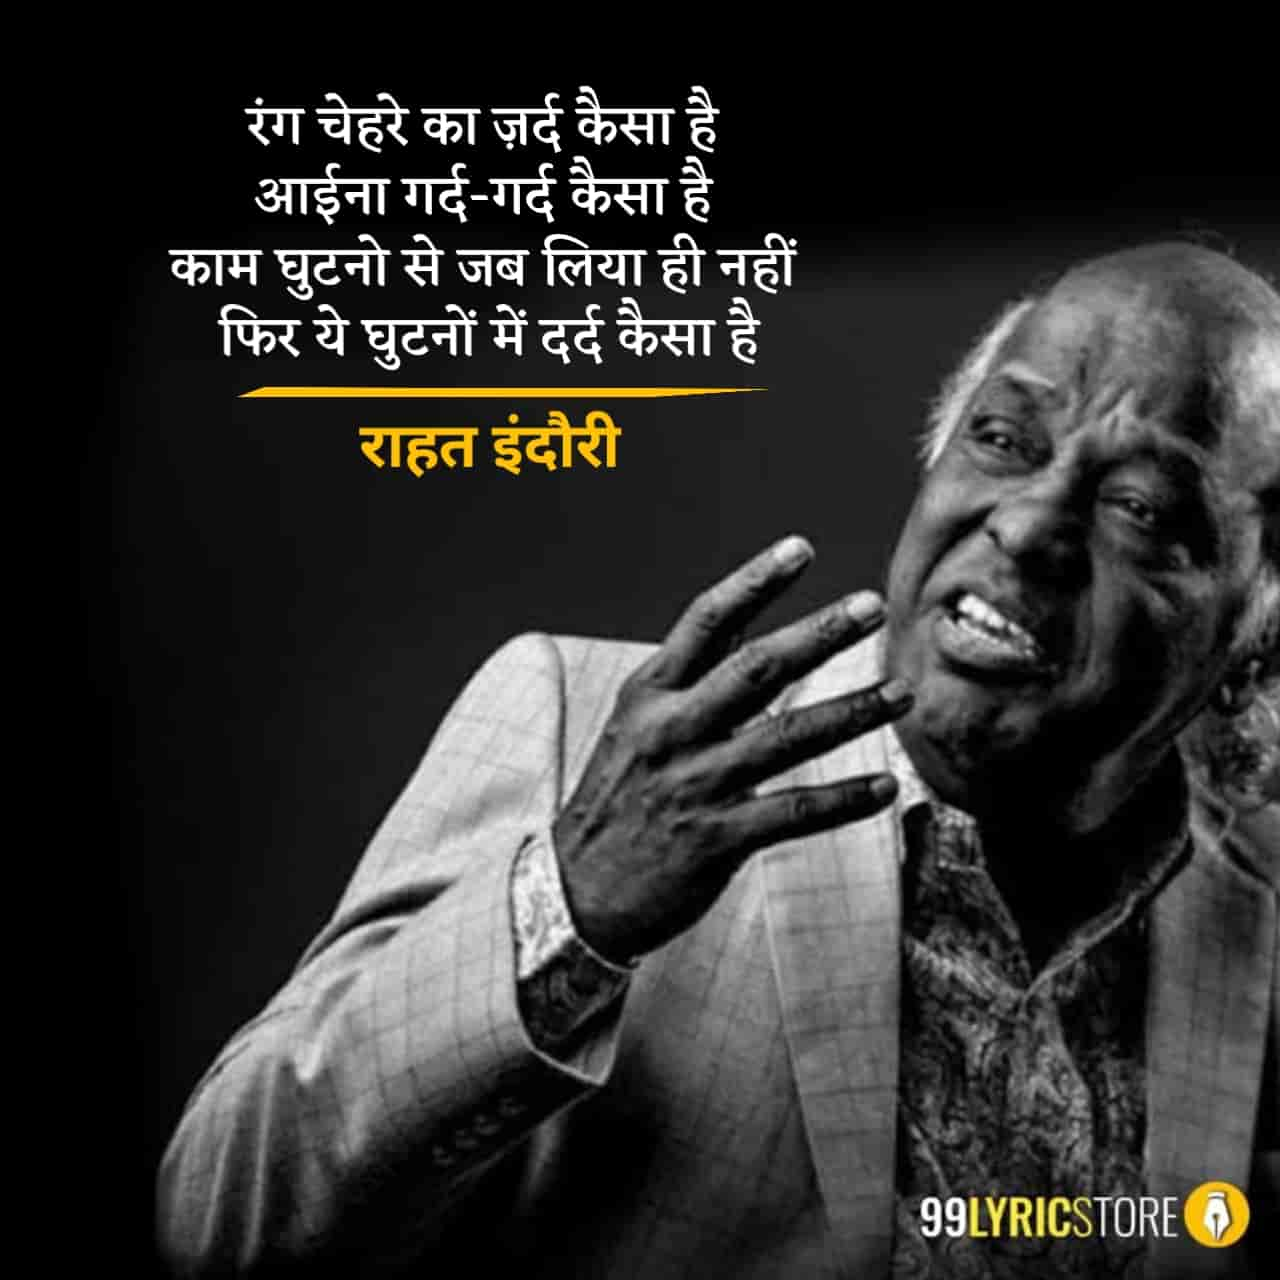 This Beautiful Ghazal 'Phir Ye Ghutno Me Dard Kaisa Hai' which is written and performed by Rahat Indori.